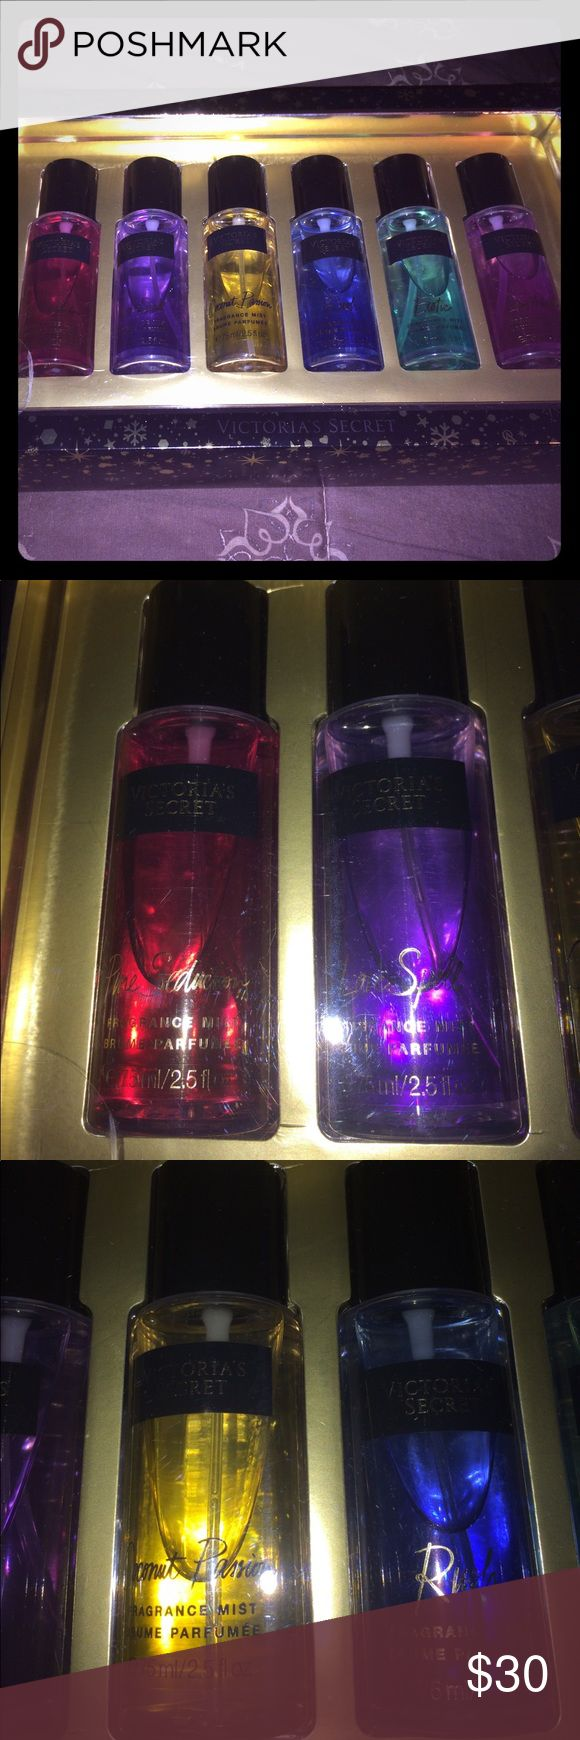 Brand New Victoria's Secret Perfume Set 6 Piece!! Brand New Women's Victoria Secret 6 Piece Perfume Set!! Set includes Pure Seduction, Love Spell, Coconut Passion, Rush, Exotic, Love Addiction!! All Brand New Never Been Used!! Victoria's Secret Other